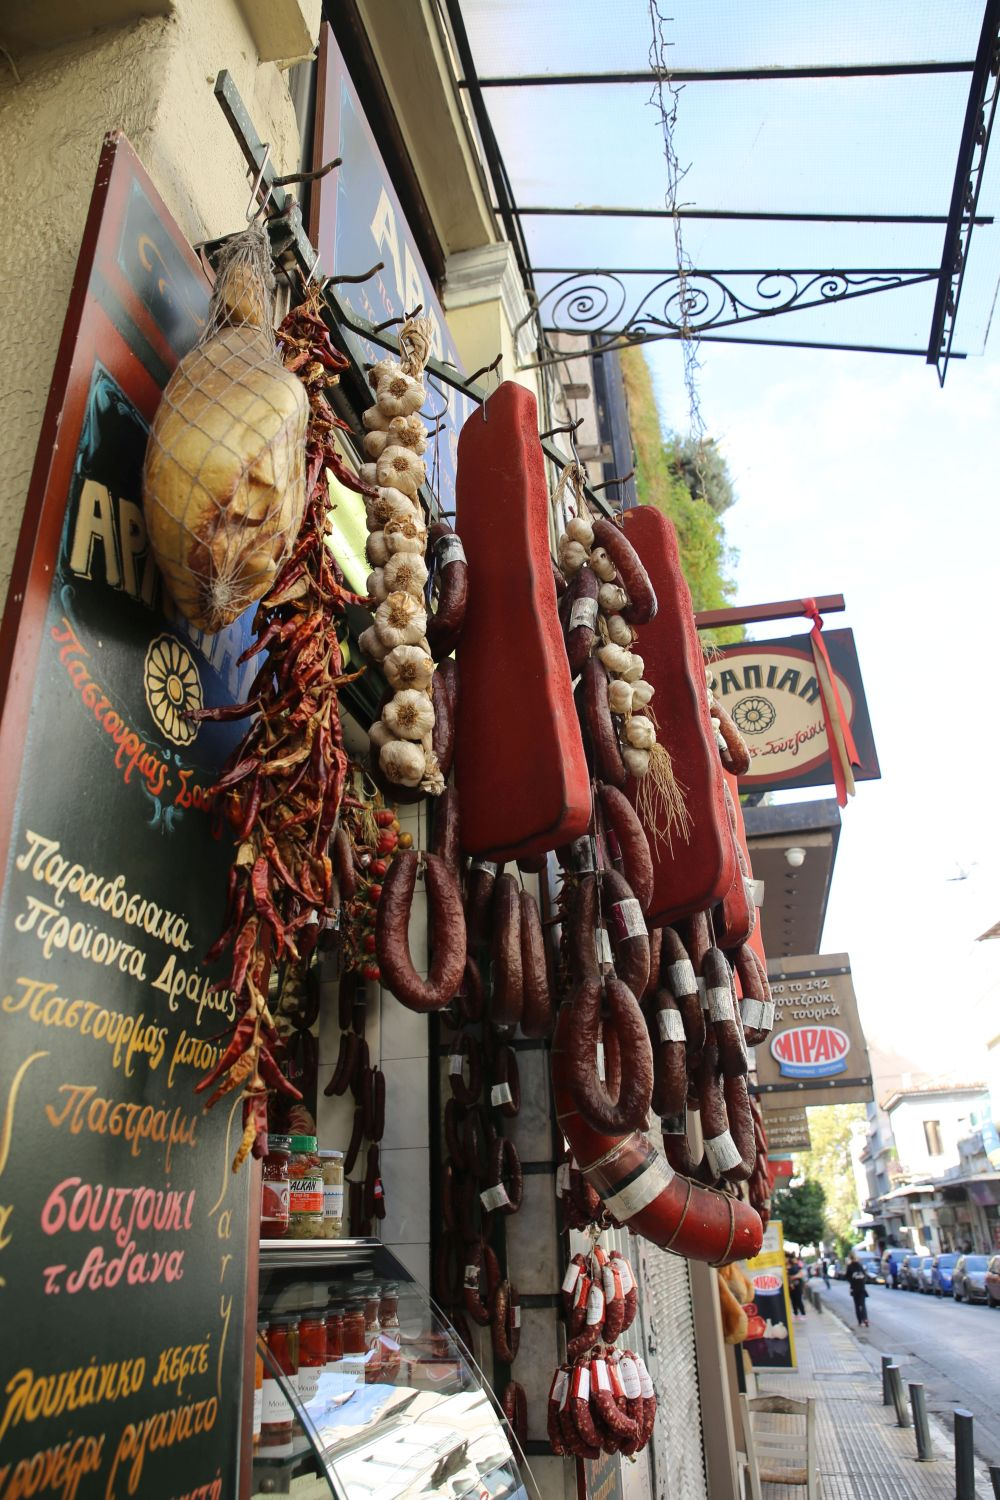 Athens food tour: Traditional food shop with curated meat